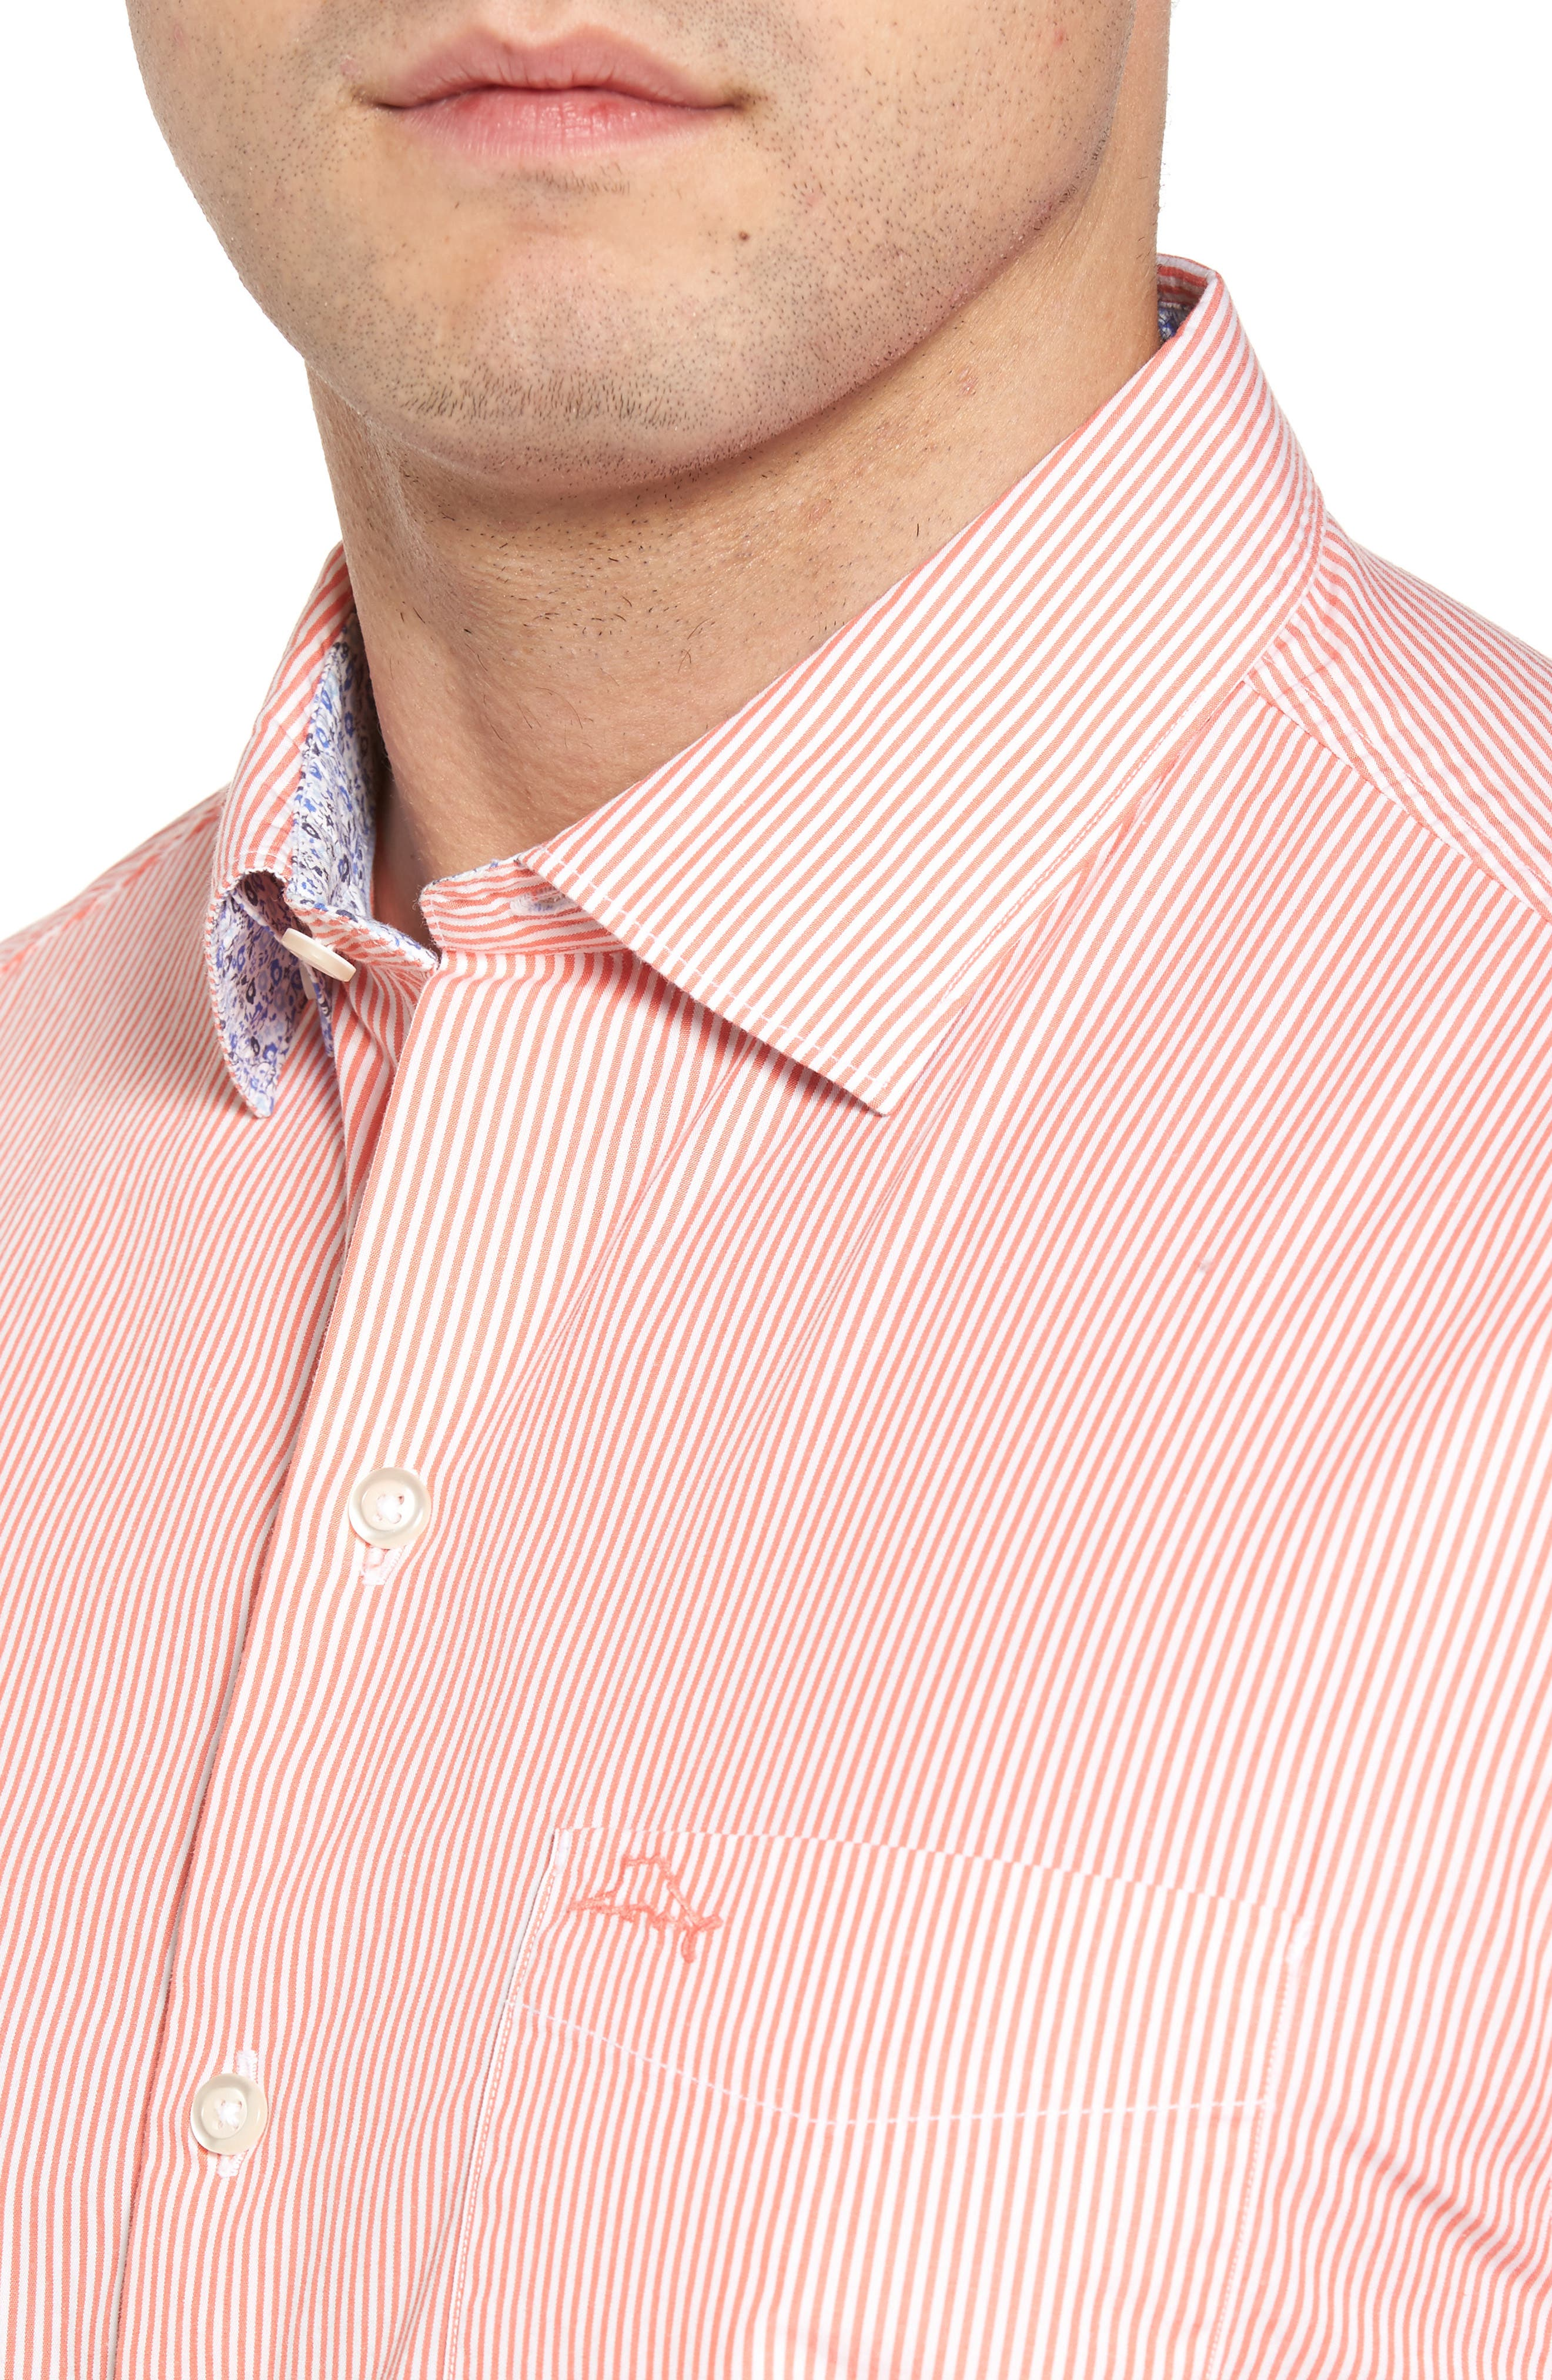 Fadeaway Beach Sport Shirt,                             Alternate thumbnail 4, color,                             950